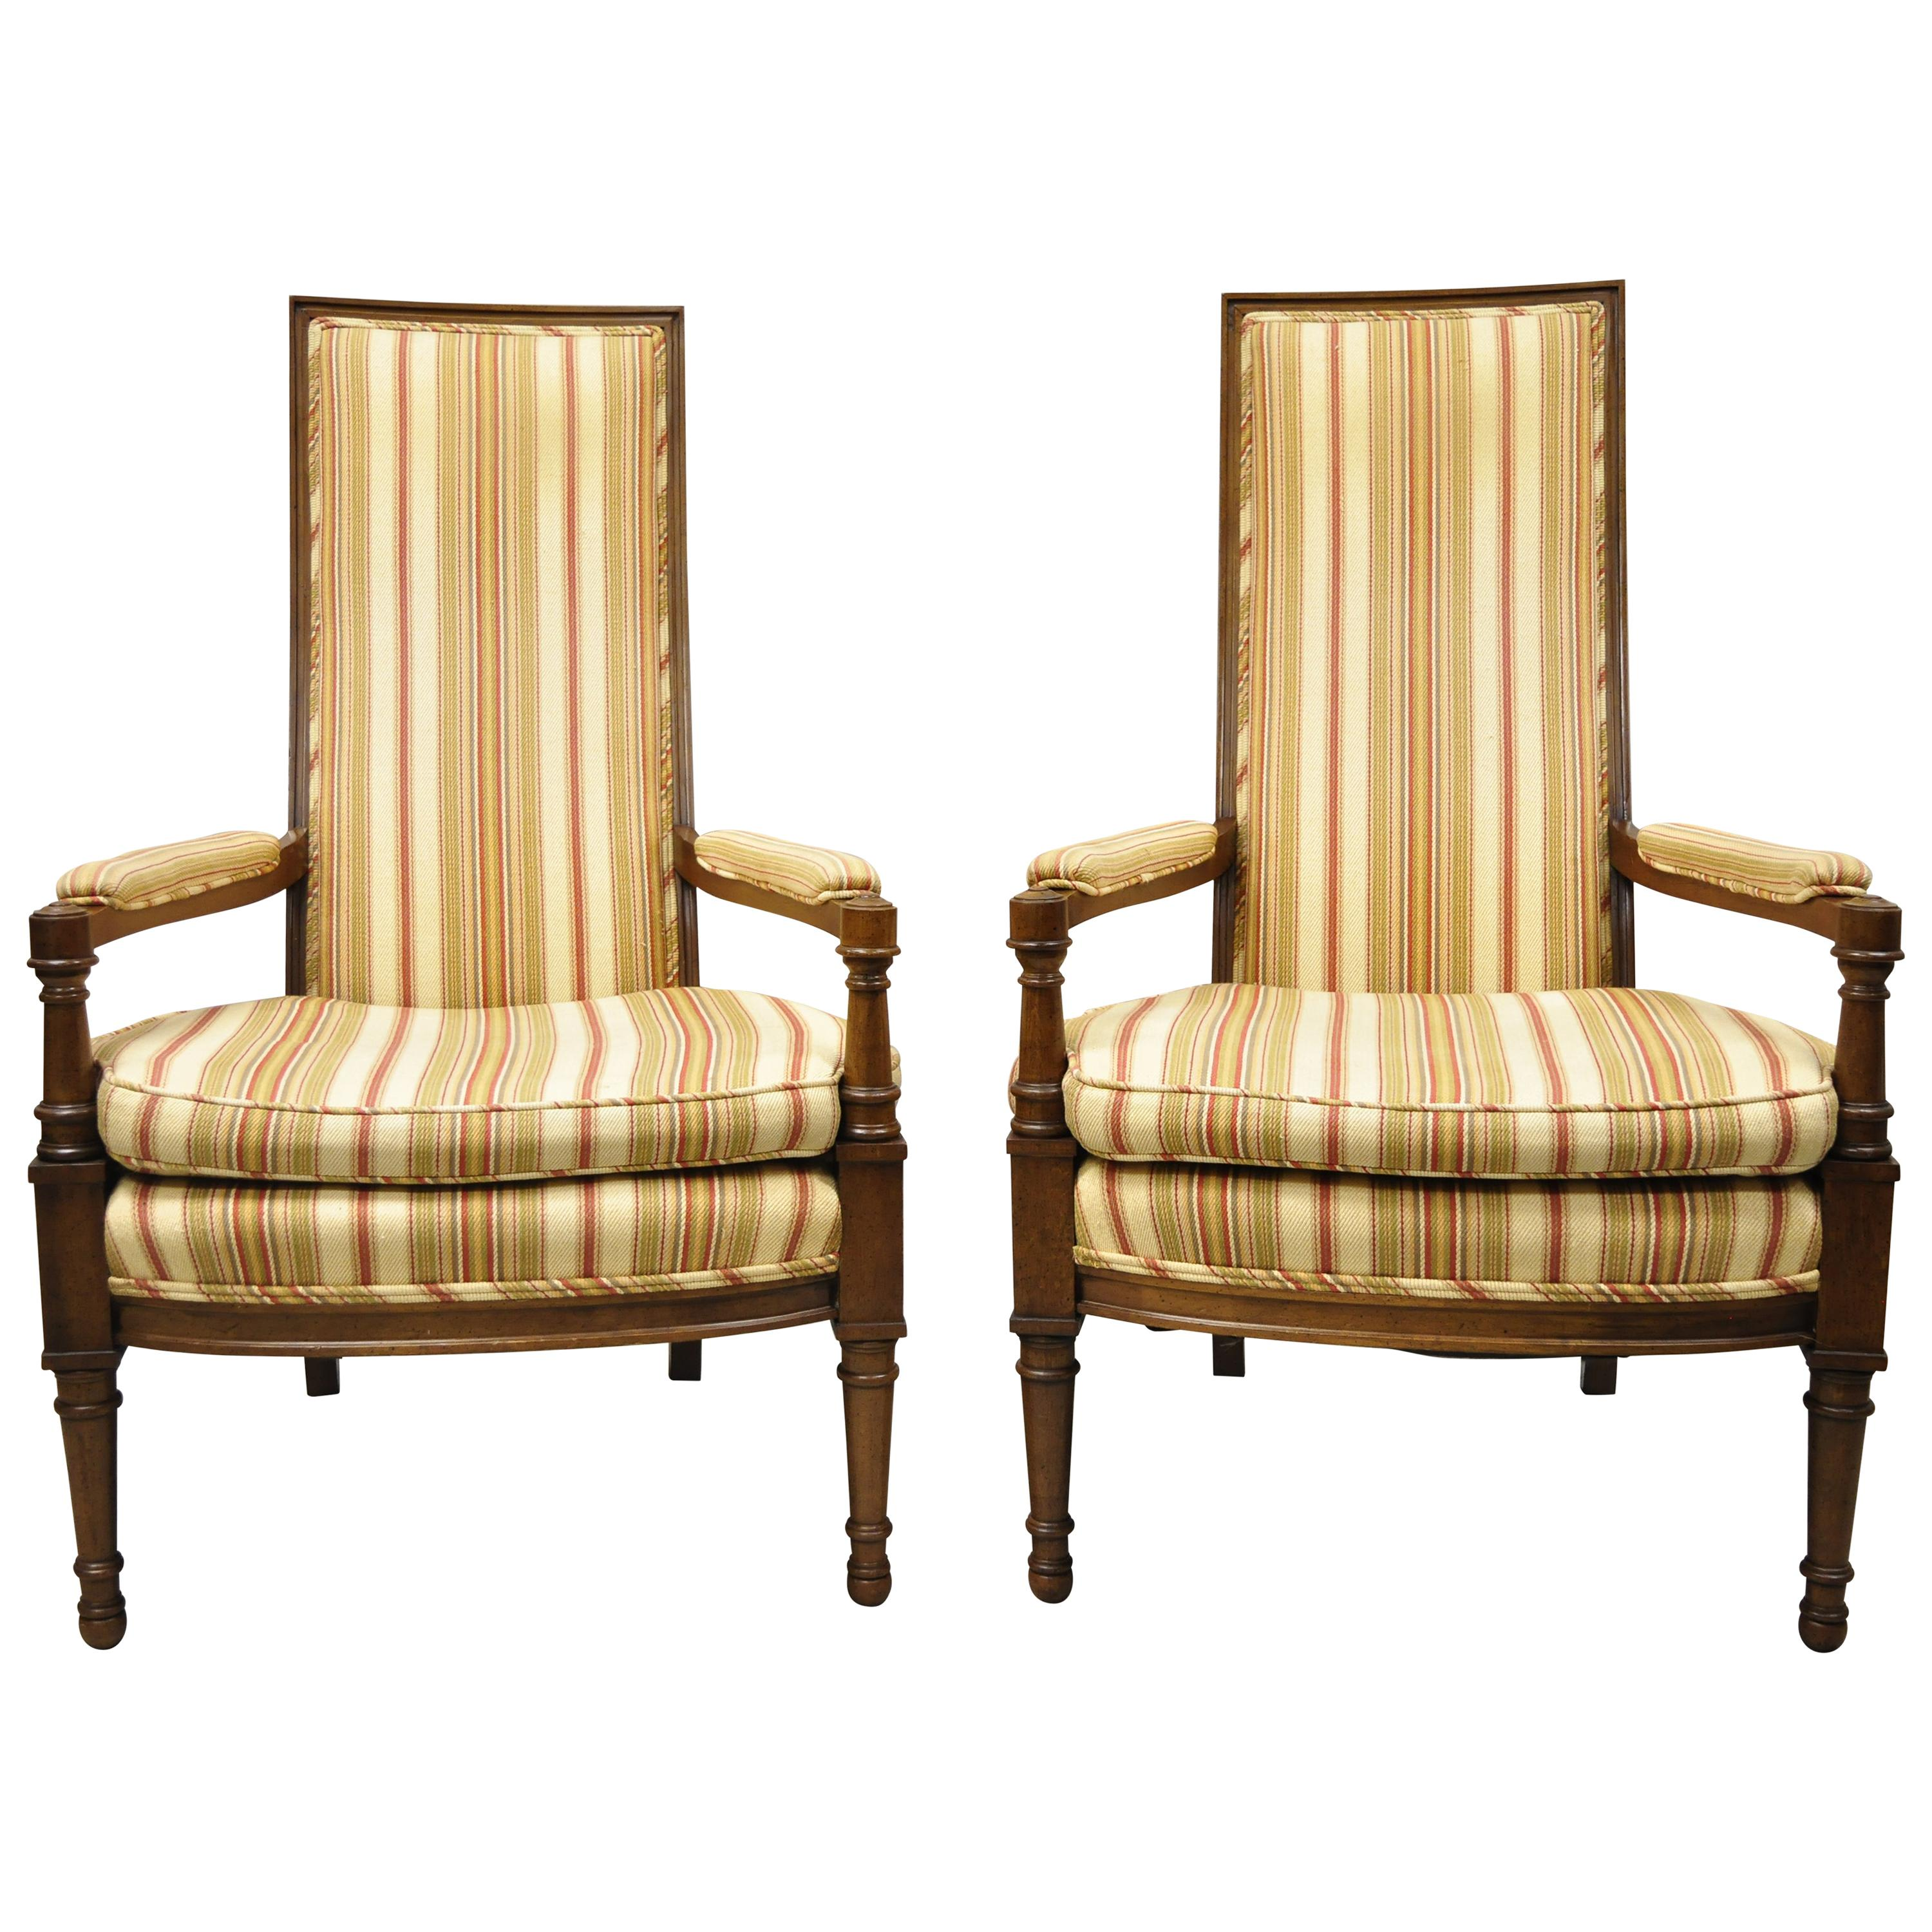 Hollywood Regency French High Back Upholstered Fireside Armchairs, a Pair